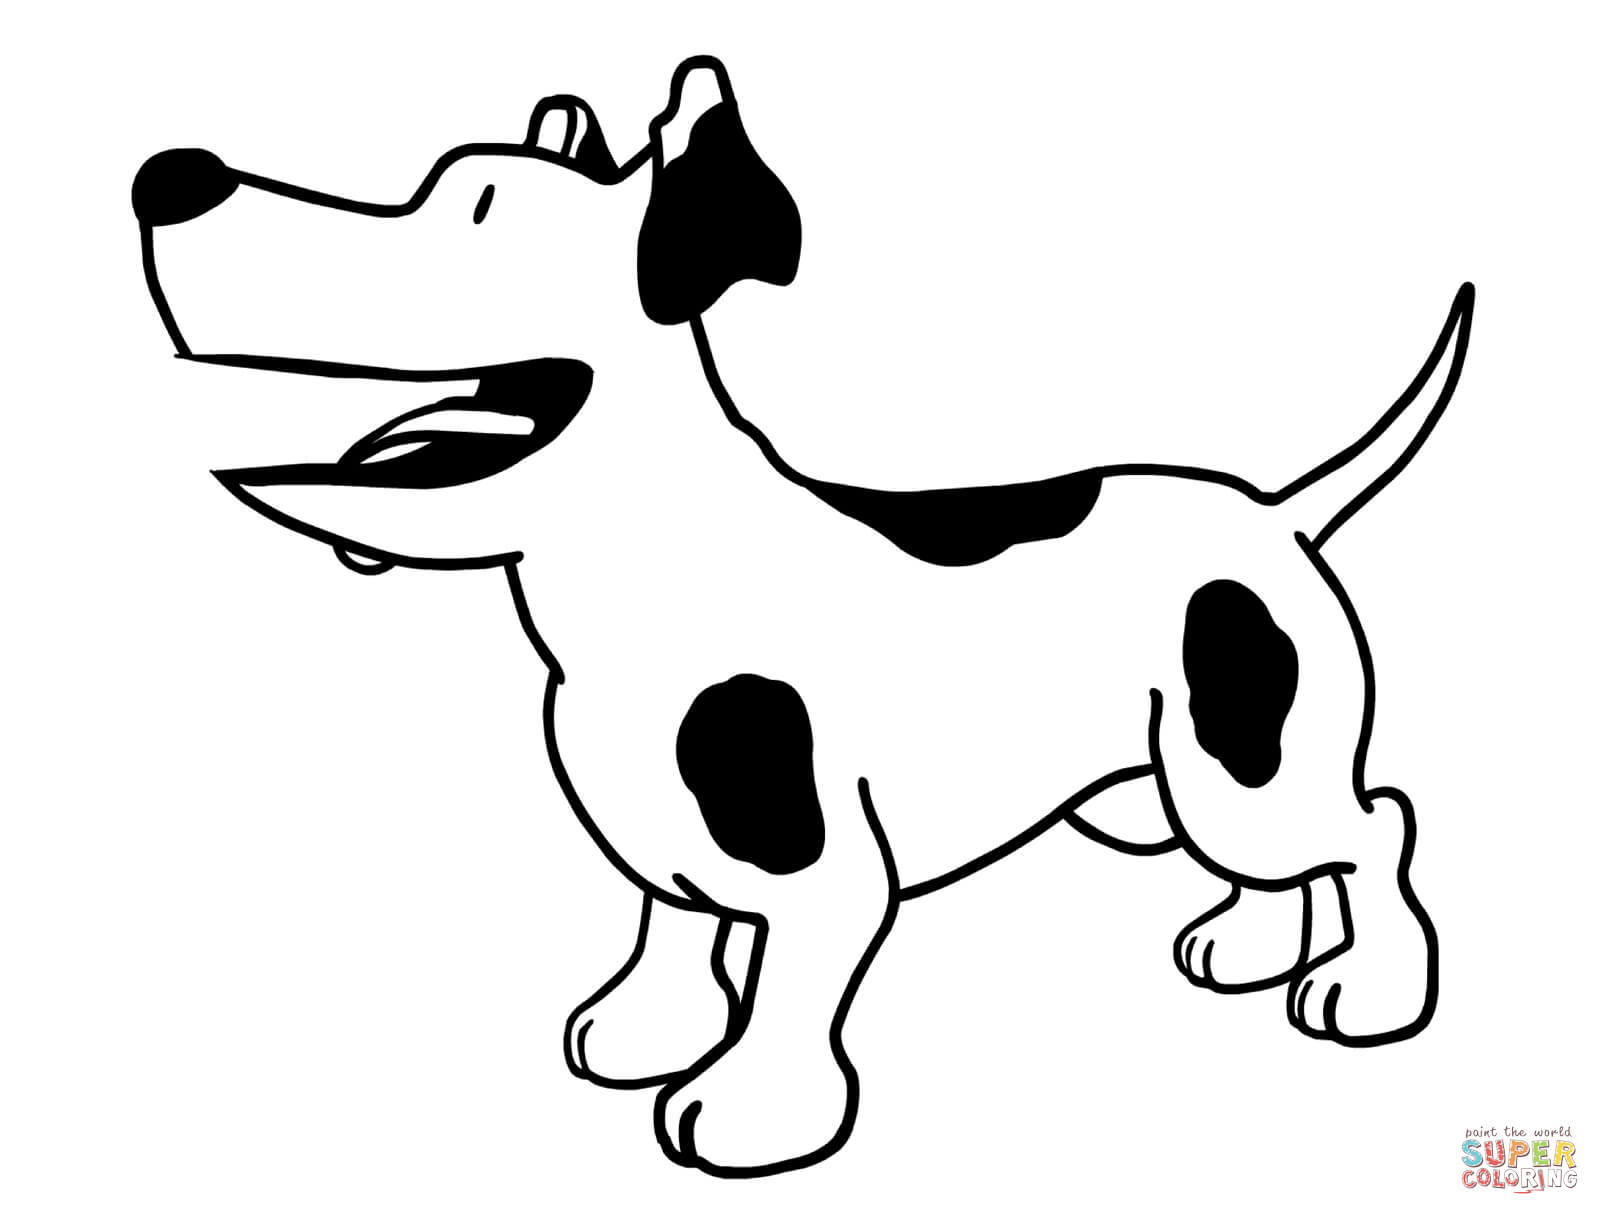 hight resolution of olivia s dog perry go dog go coloring page free printable coloring pages olivia s dog perry neck seymour duncan hot rails tele wiring diagram